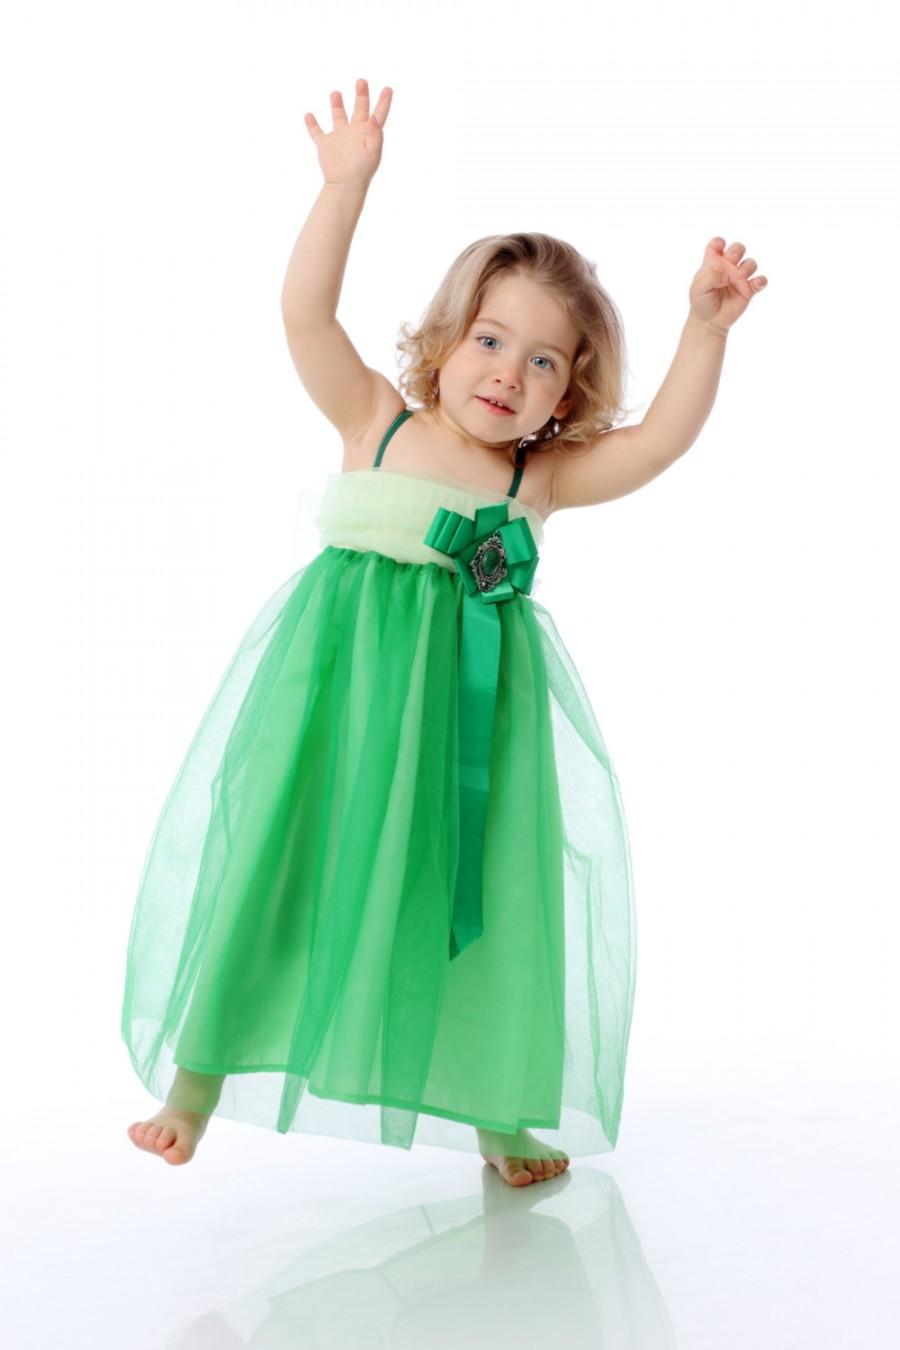 Düğün - Green Girl dress, Ariel Dress, Kid Dress, Toddler Dress, Tutu Dress, Fairy Dress, Girl Dress, Princess Dress, Girl Gown, Birthday Dress